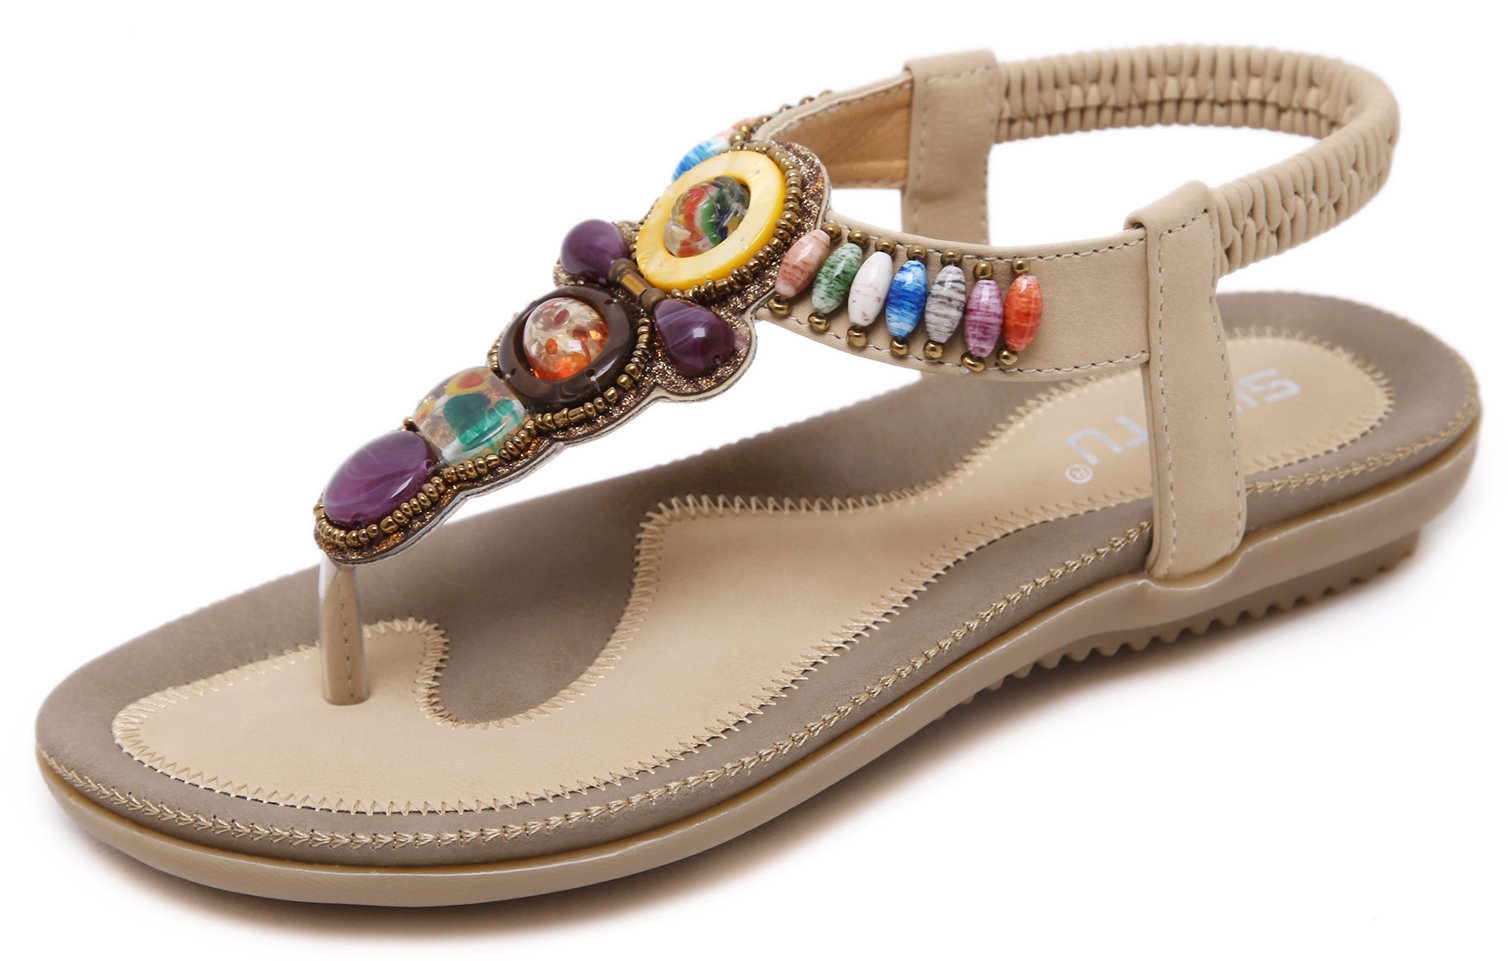 DolphinBanana Colorful Summer Vacation T Strap Flat Sandals Beige Open Toe Thongs Jewels Gem Beads Dressy Casual Daily Wear Flip Flop Fashion Design for Women Girls Seaside Beach Match Large Size